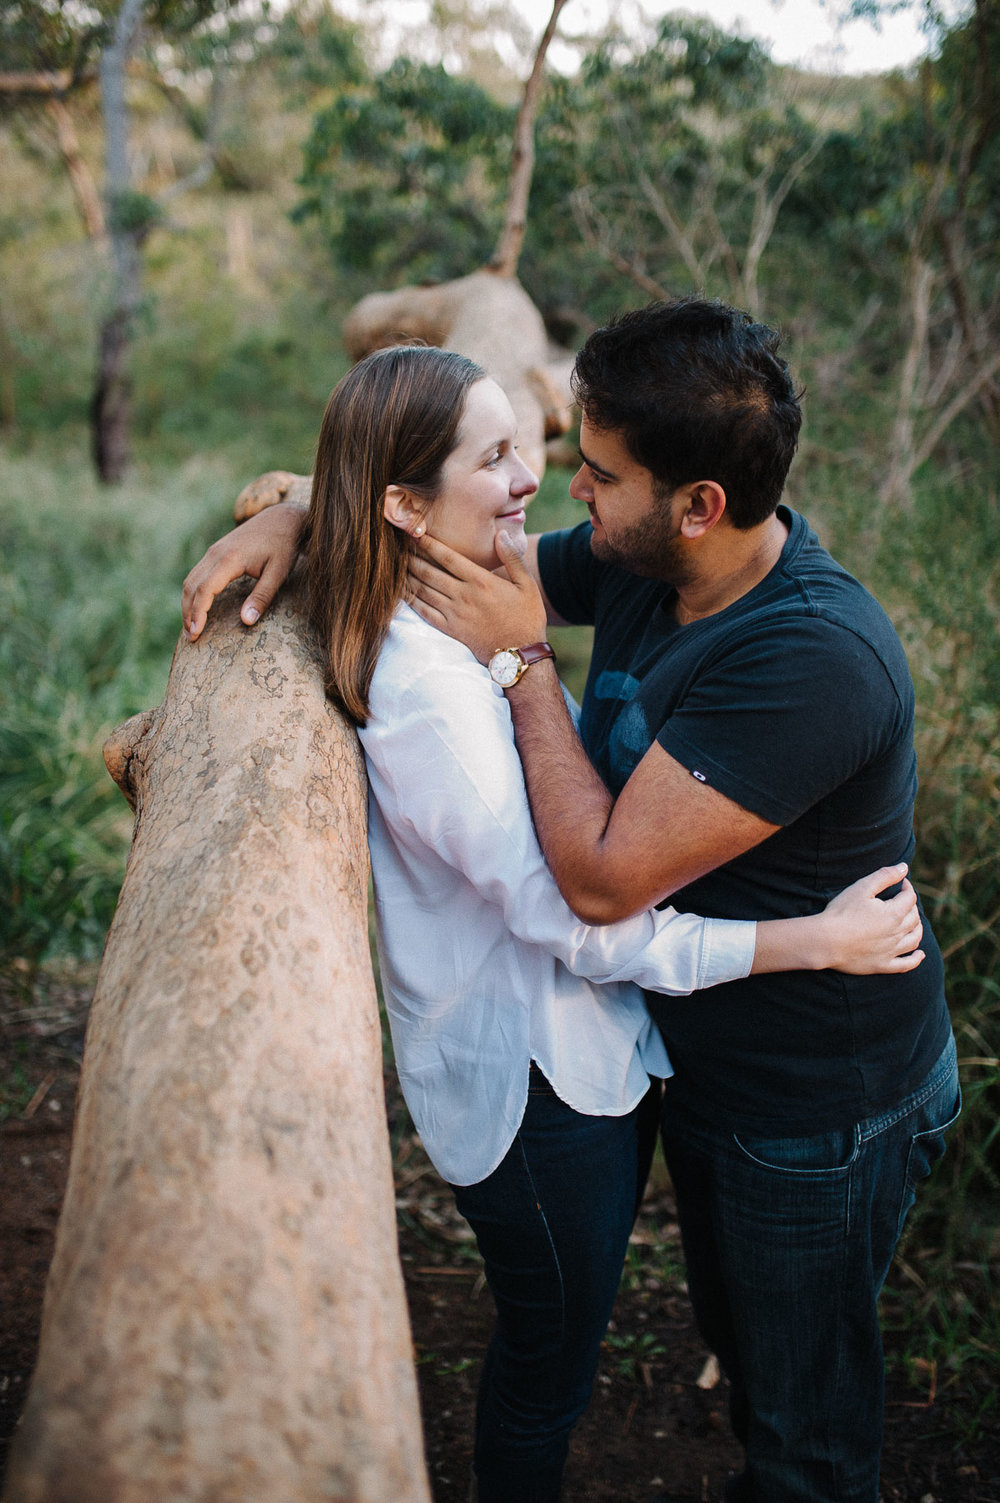 24-relaxed engagement photography perth.jpg